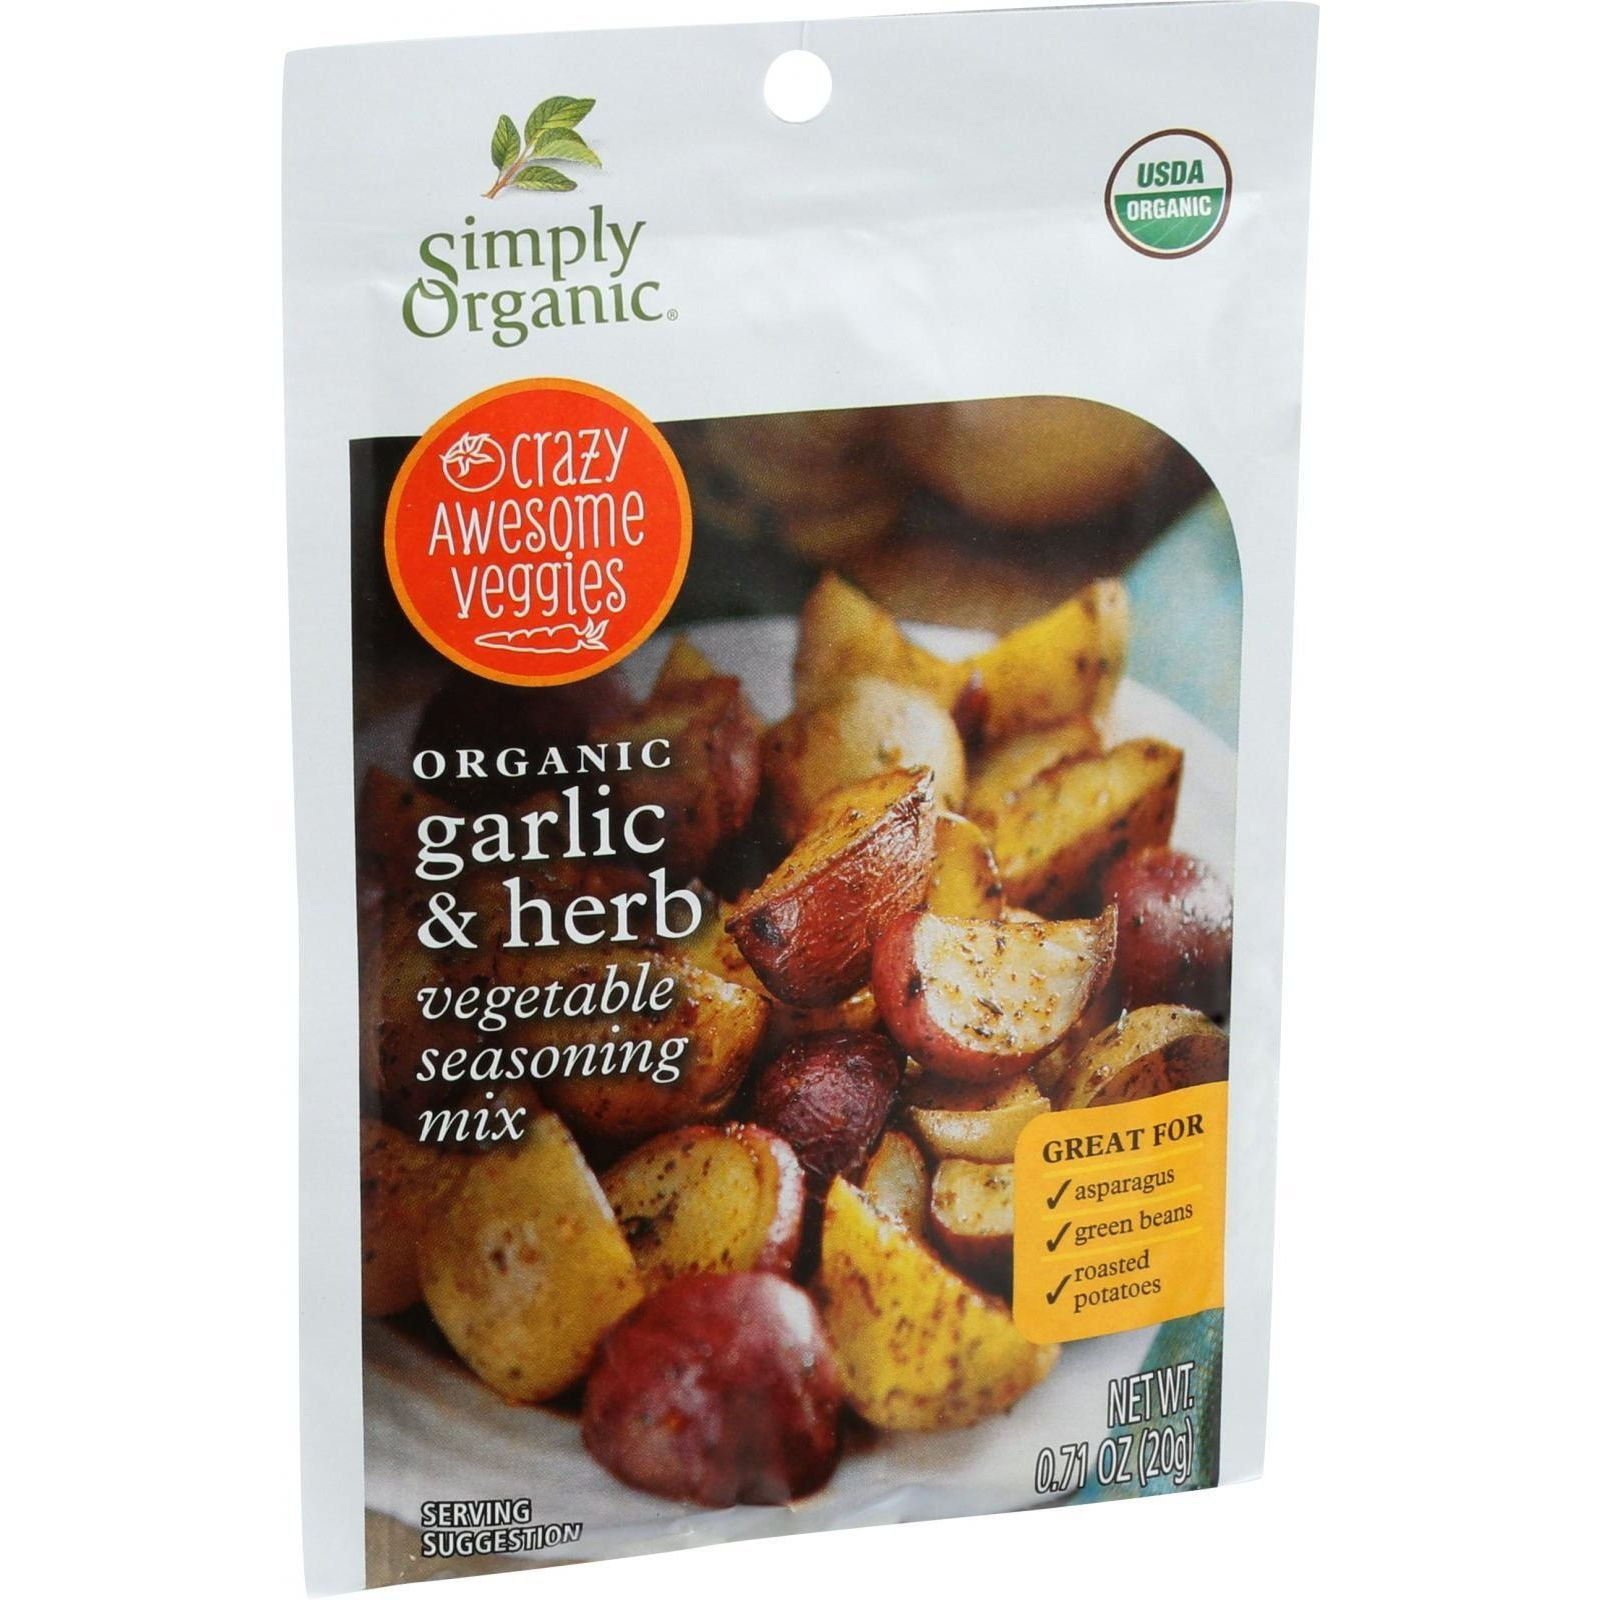 Simply Organic Garlic and Herb Vegetable Seasoning Mix, 0.71 Ounce - 12 per case. by Simply Organic